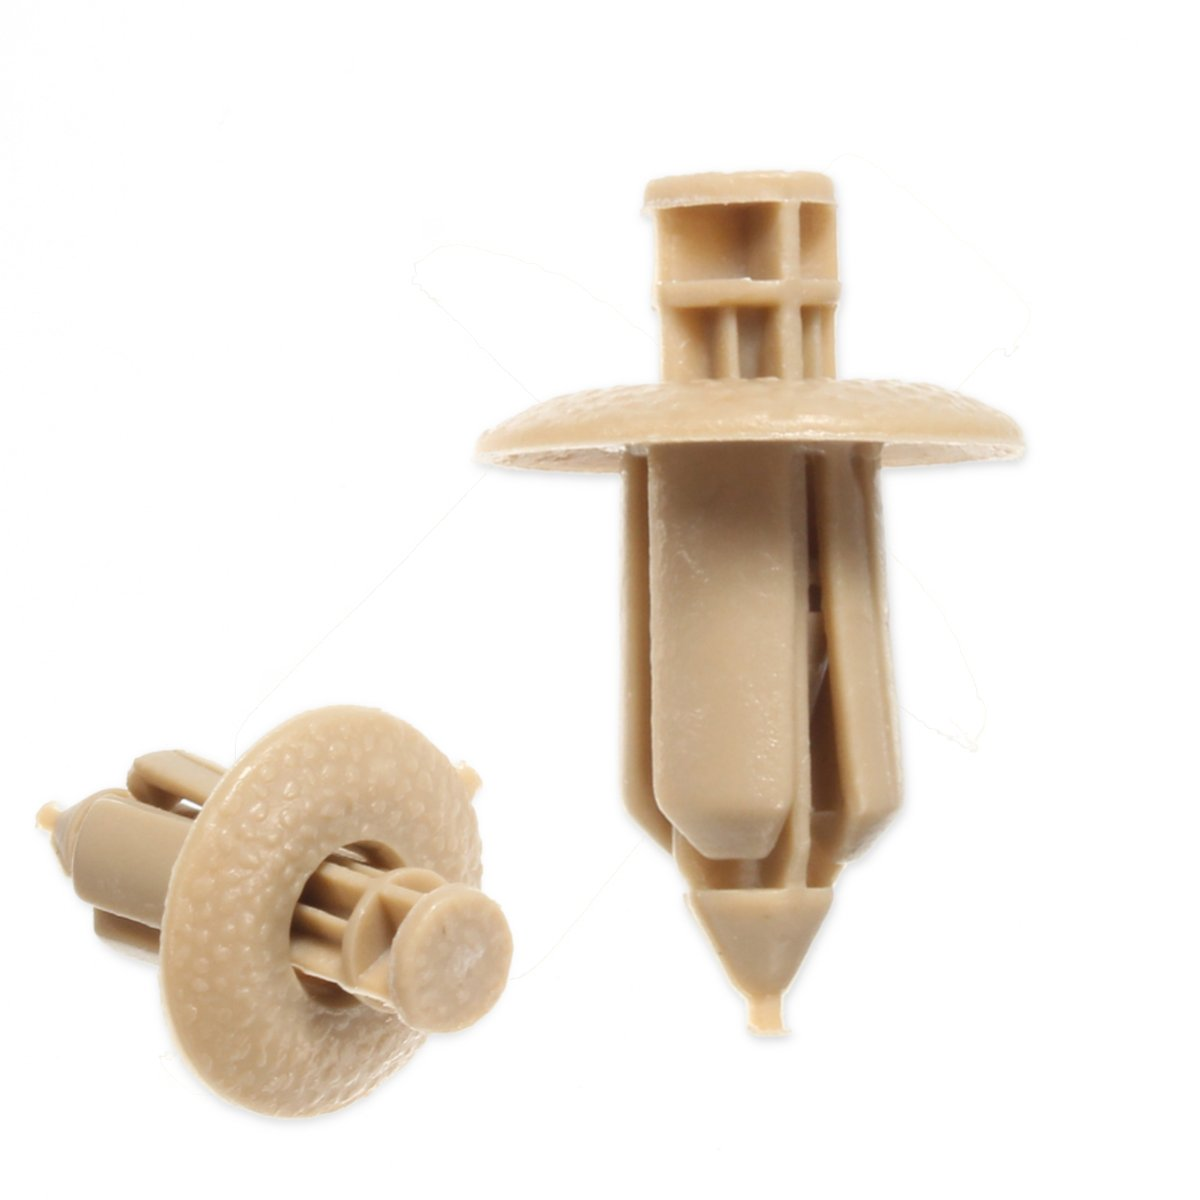 10pcs Plastic Rivet Trim Panel Car Fastener Clip Door Beige For VOLVO C70/S60/S80/V70